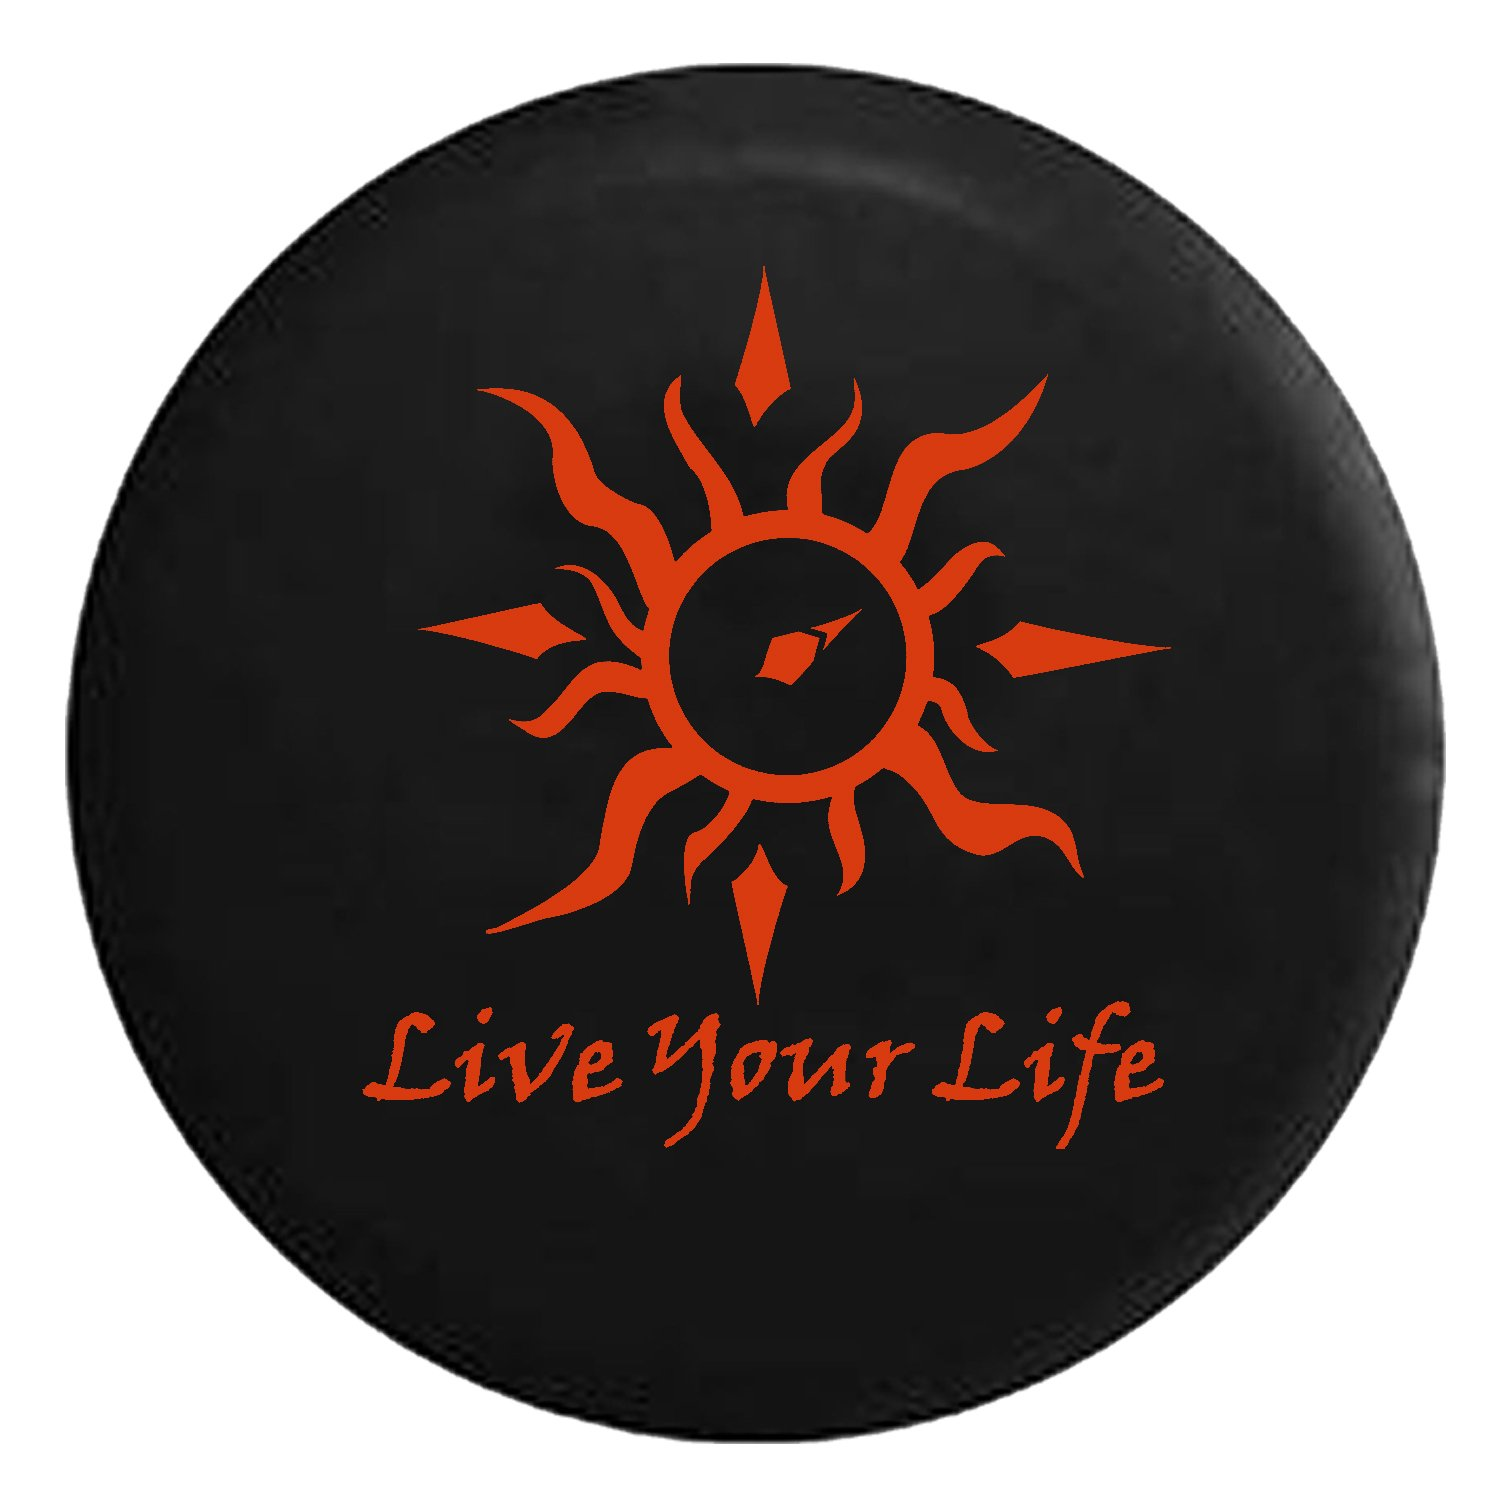 Live Your Life Tribal Sun Compass Spare Jeep Wrangler Camper SUV Tire Cover Orange Ink 32 in Silver Back Covers